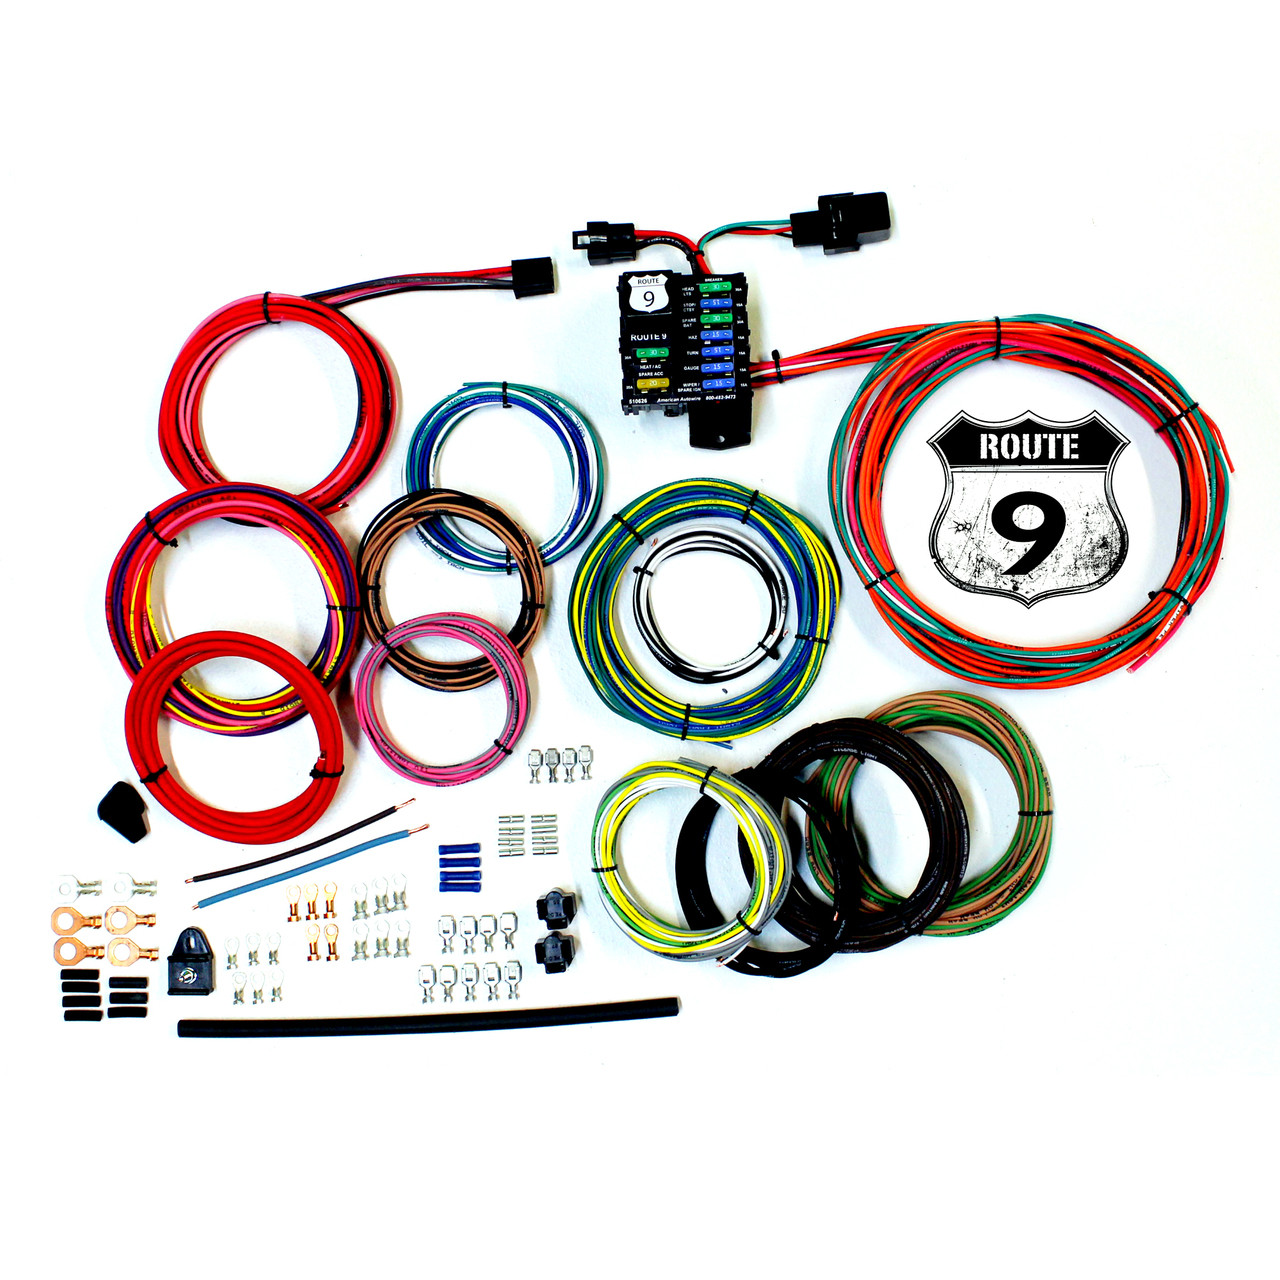 medium resolution of american autowire route 9 universal wiring kit so cal speed shop az aftermarket wiring kits american autowire toggle turn signal switch